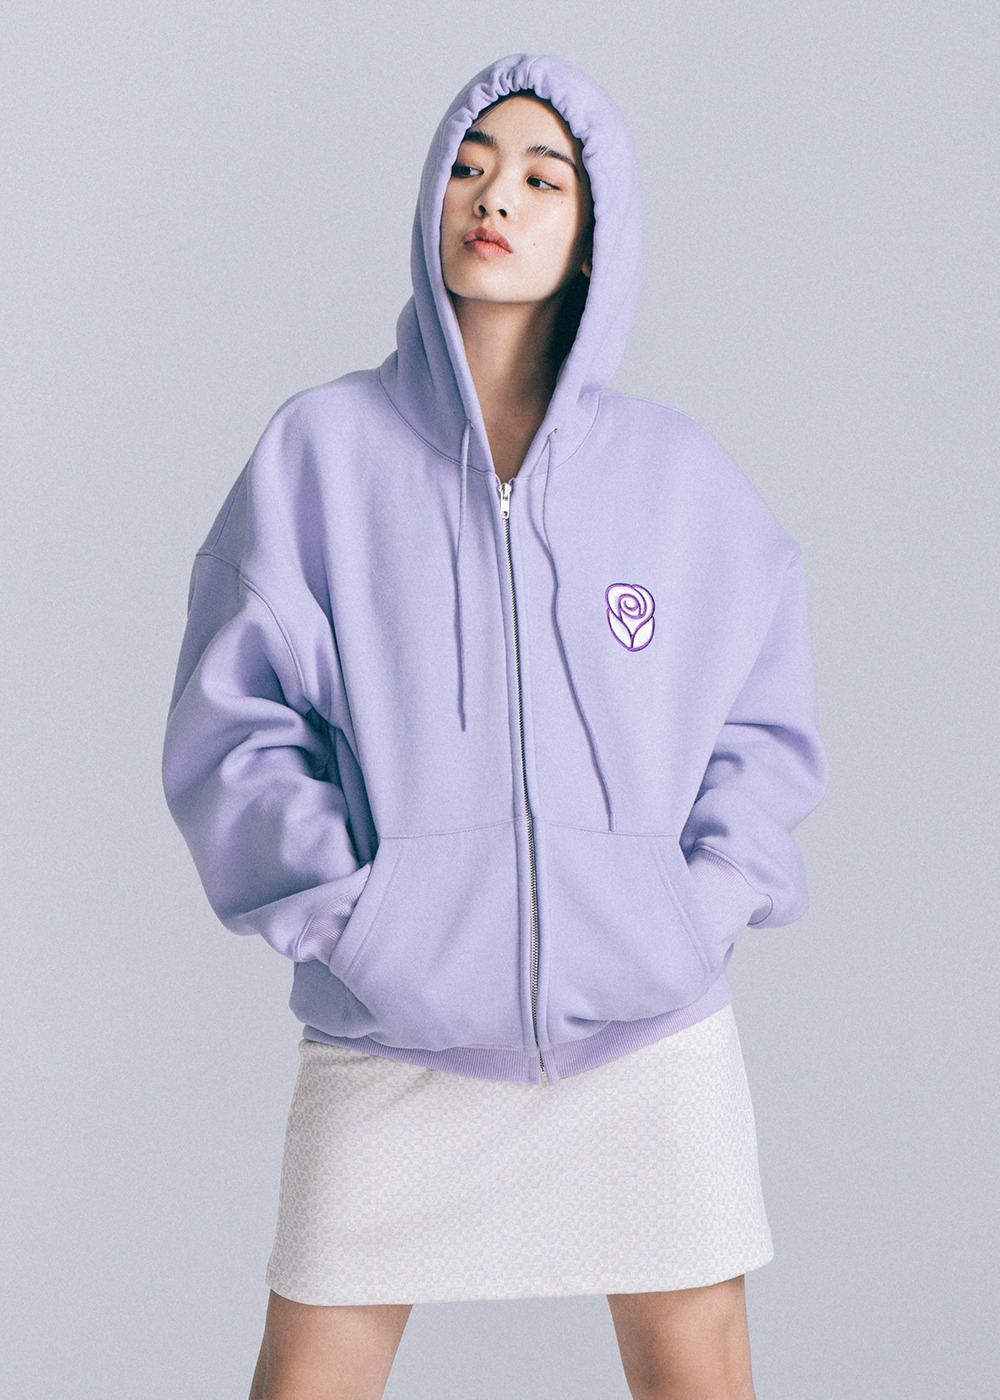 Essential Rose 2way Hoodie Zipup [LAVENDER]Essential Rose 2way Hoodie Zipup [LAVENDER]자체브랜드